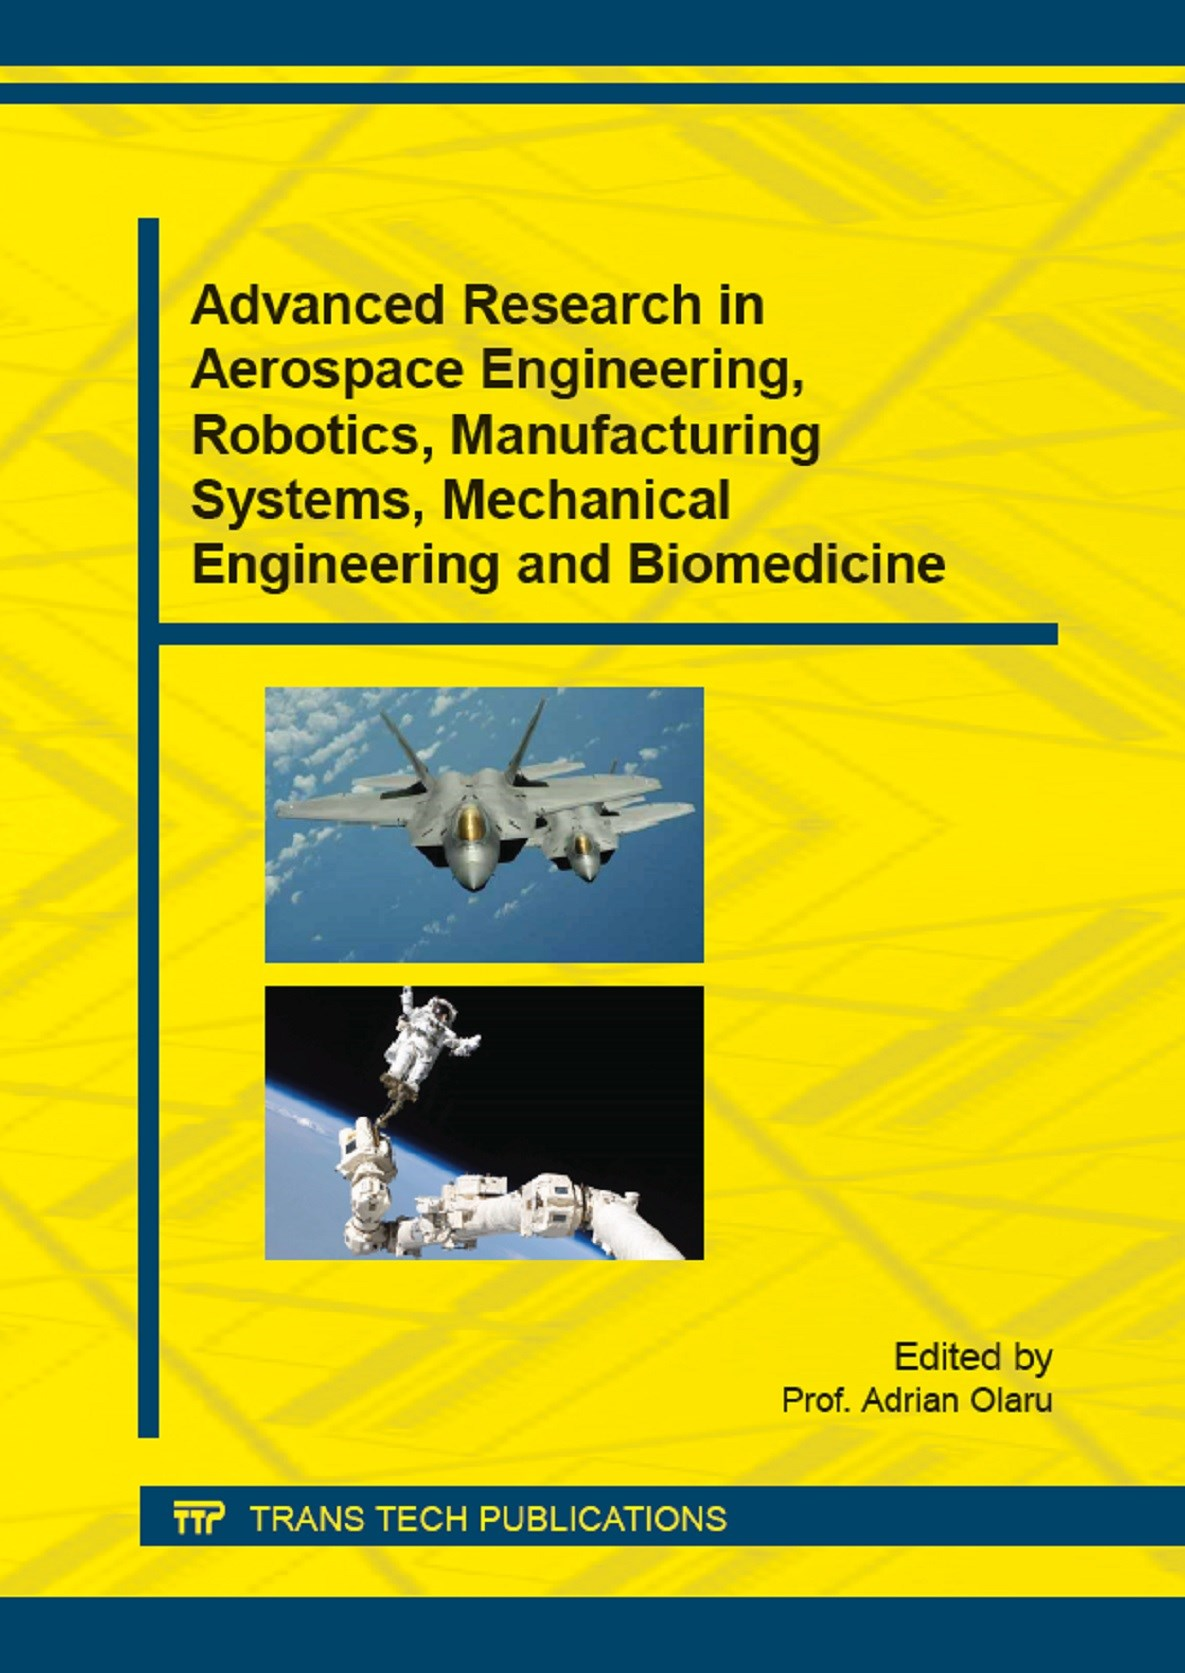 Advanced Research in Aerospace Engineering, Robotics, Manufacturing Systems, Mechanical Engineering and Biomedicine | Olaru, 2015 | Buch (Cover)